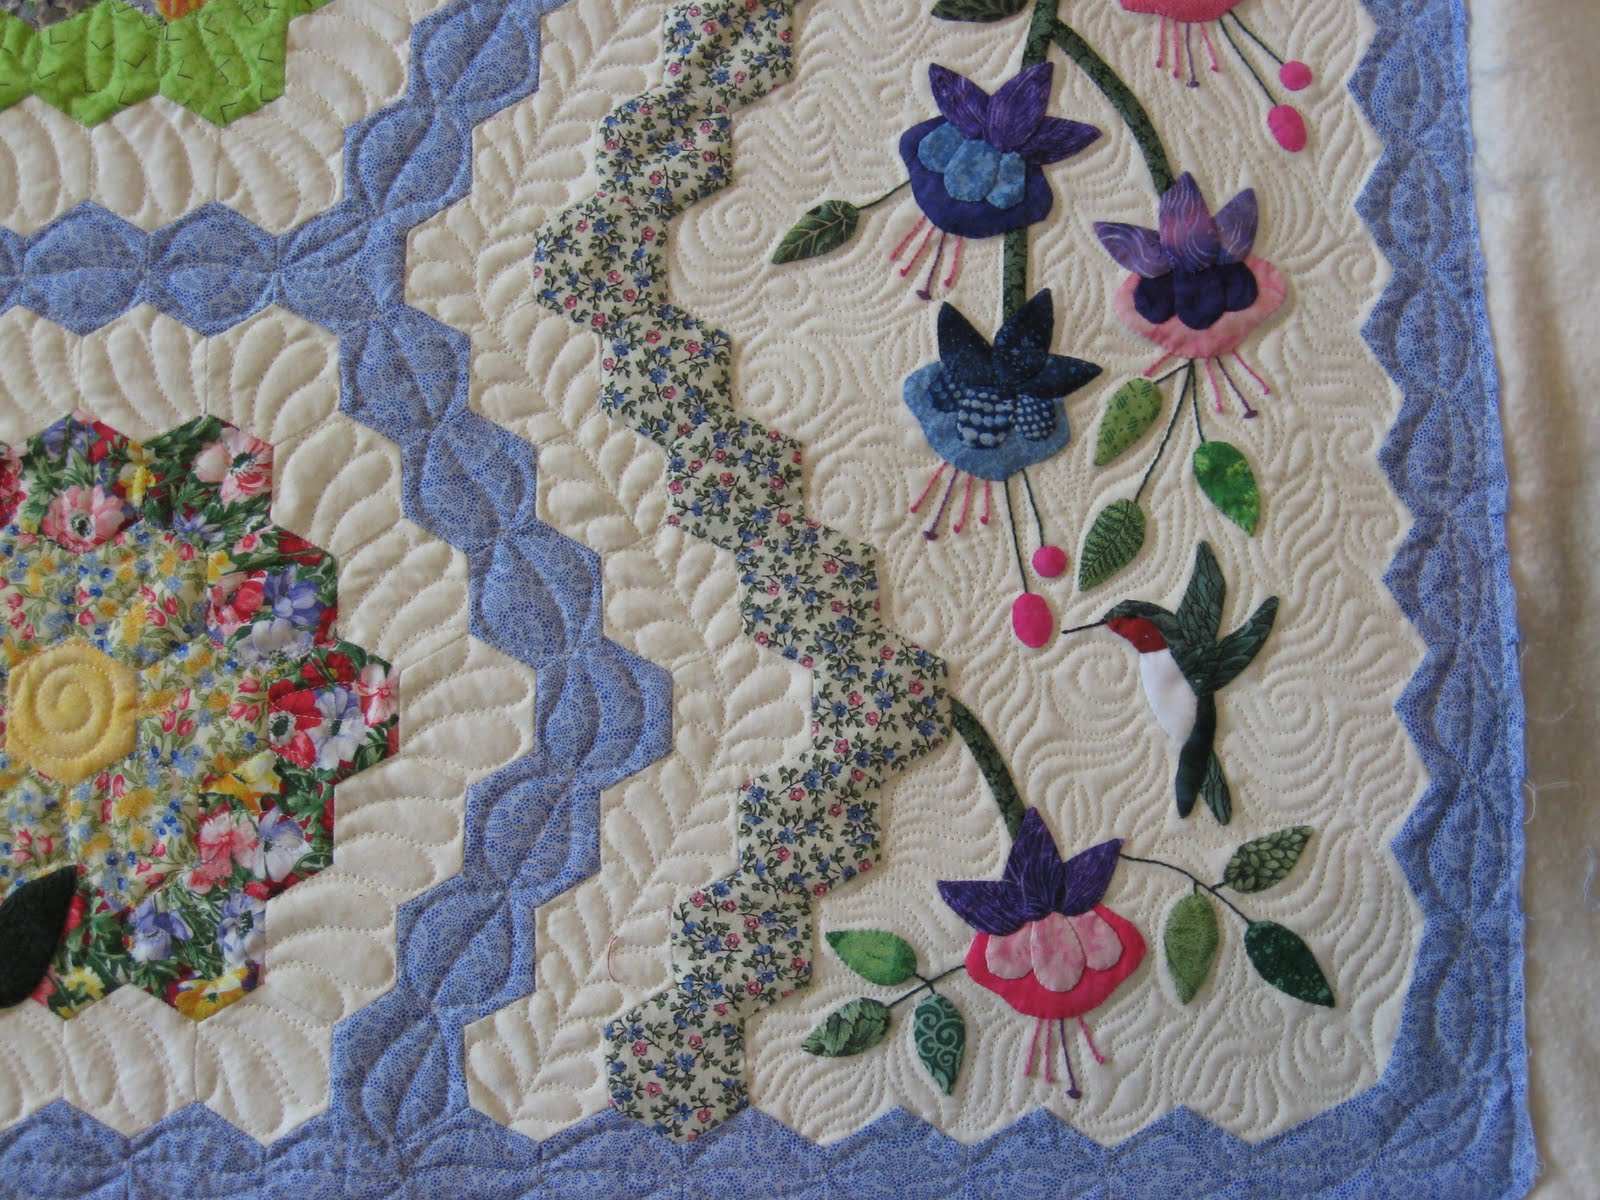 Twiddletails quilting grandmother 39 s flower garden - Grandmother s flower garden quilt ...